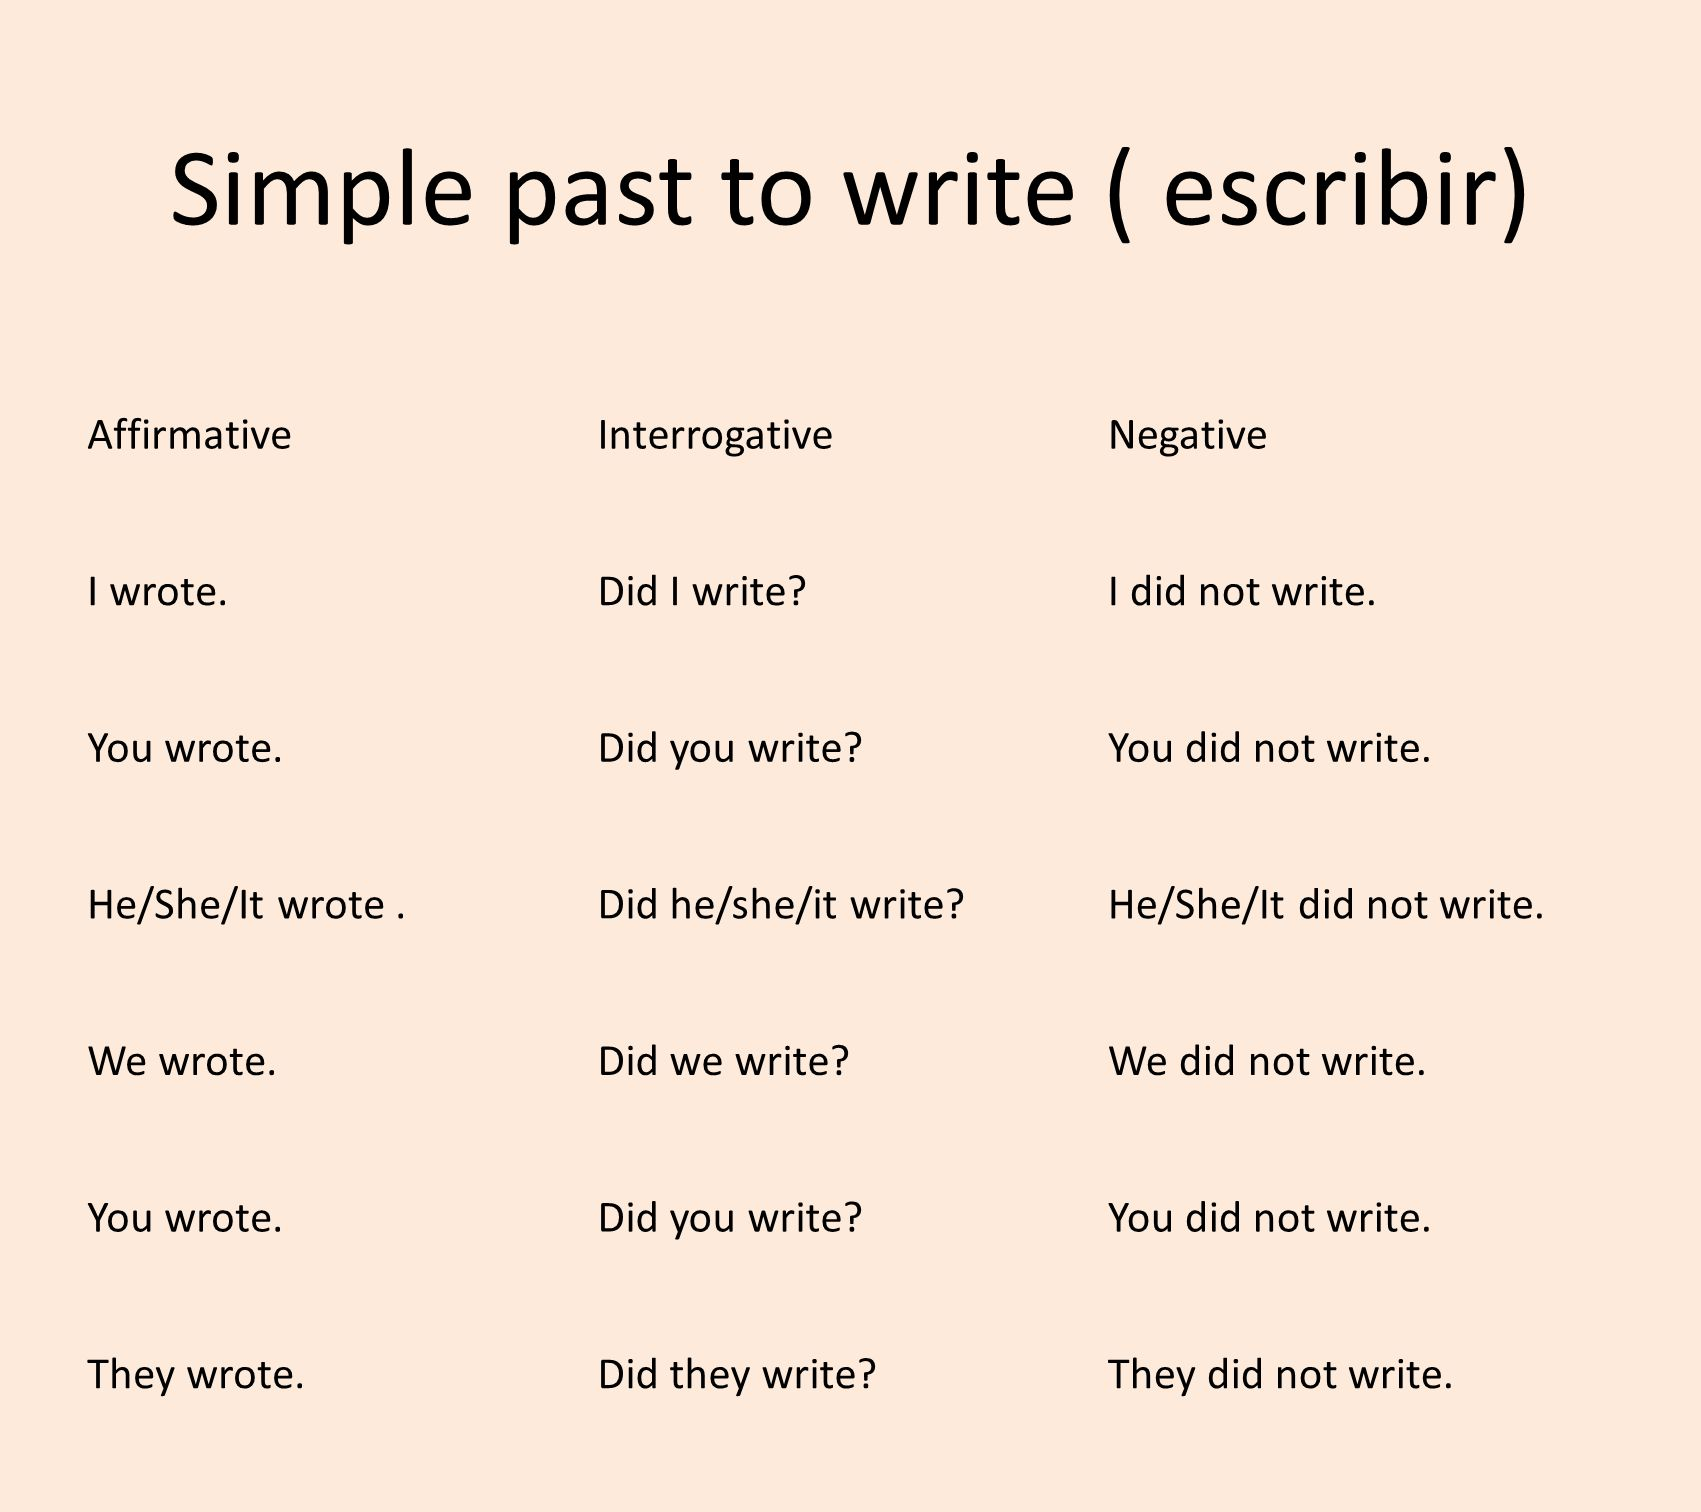 http://slideplayer.es/5436530/17/images/2/Simple+past+to+write+%28+escribir%29.jpg